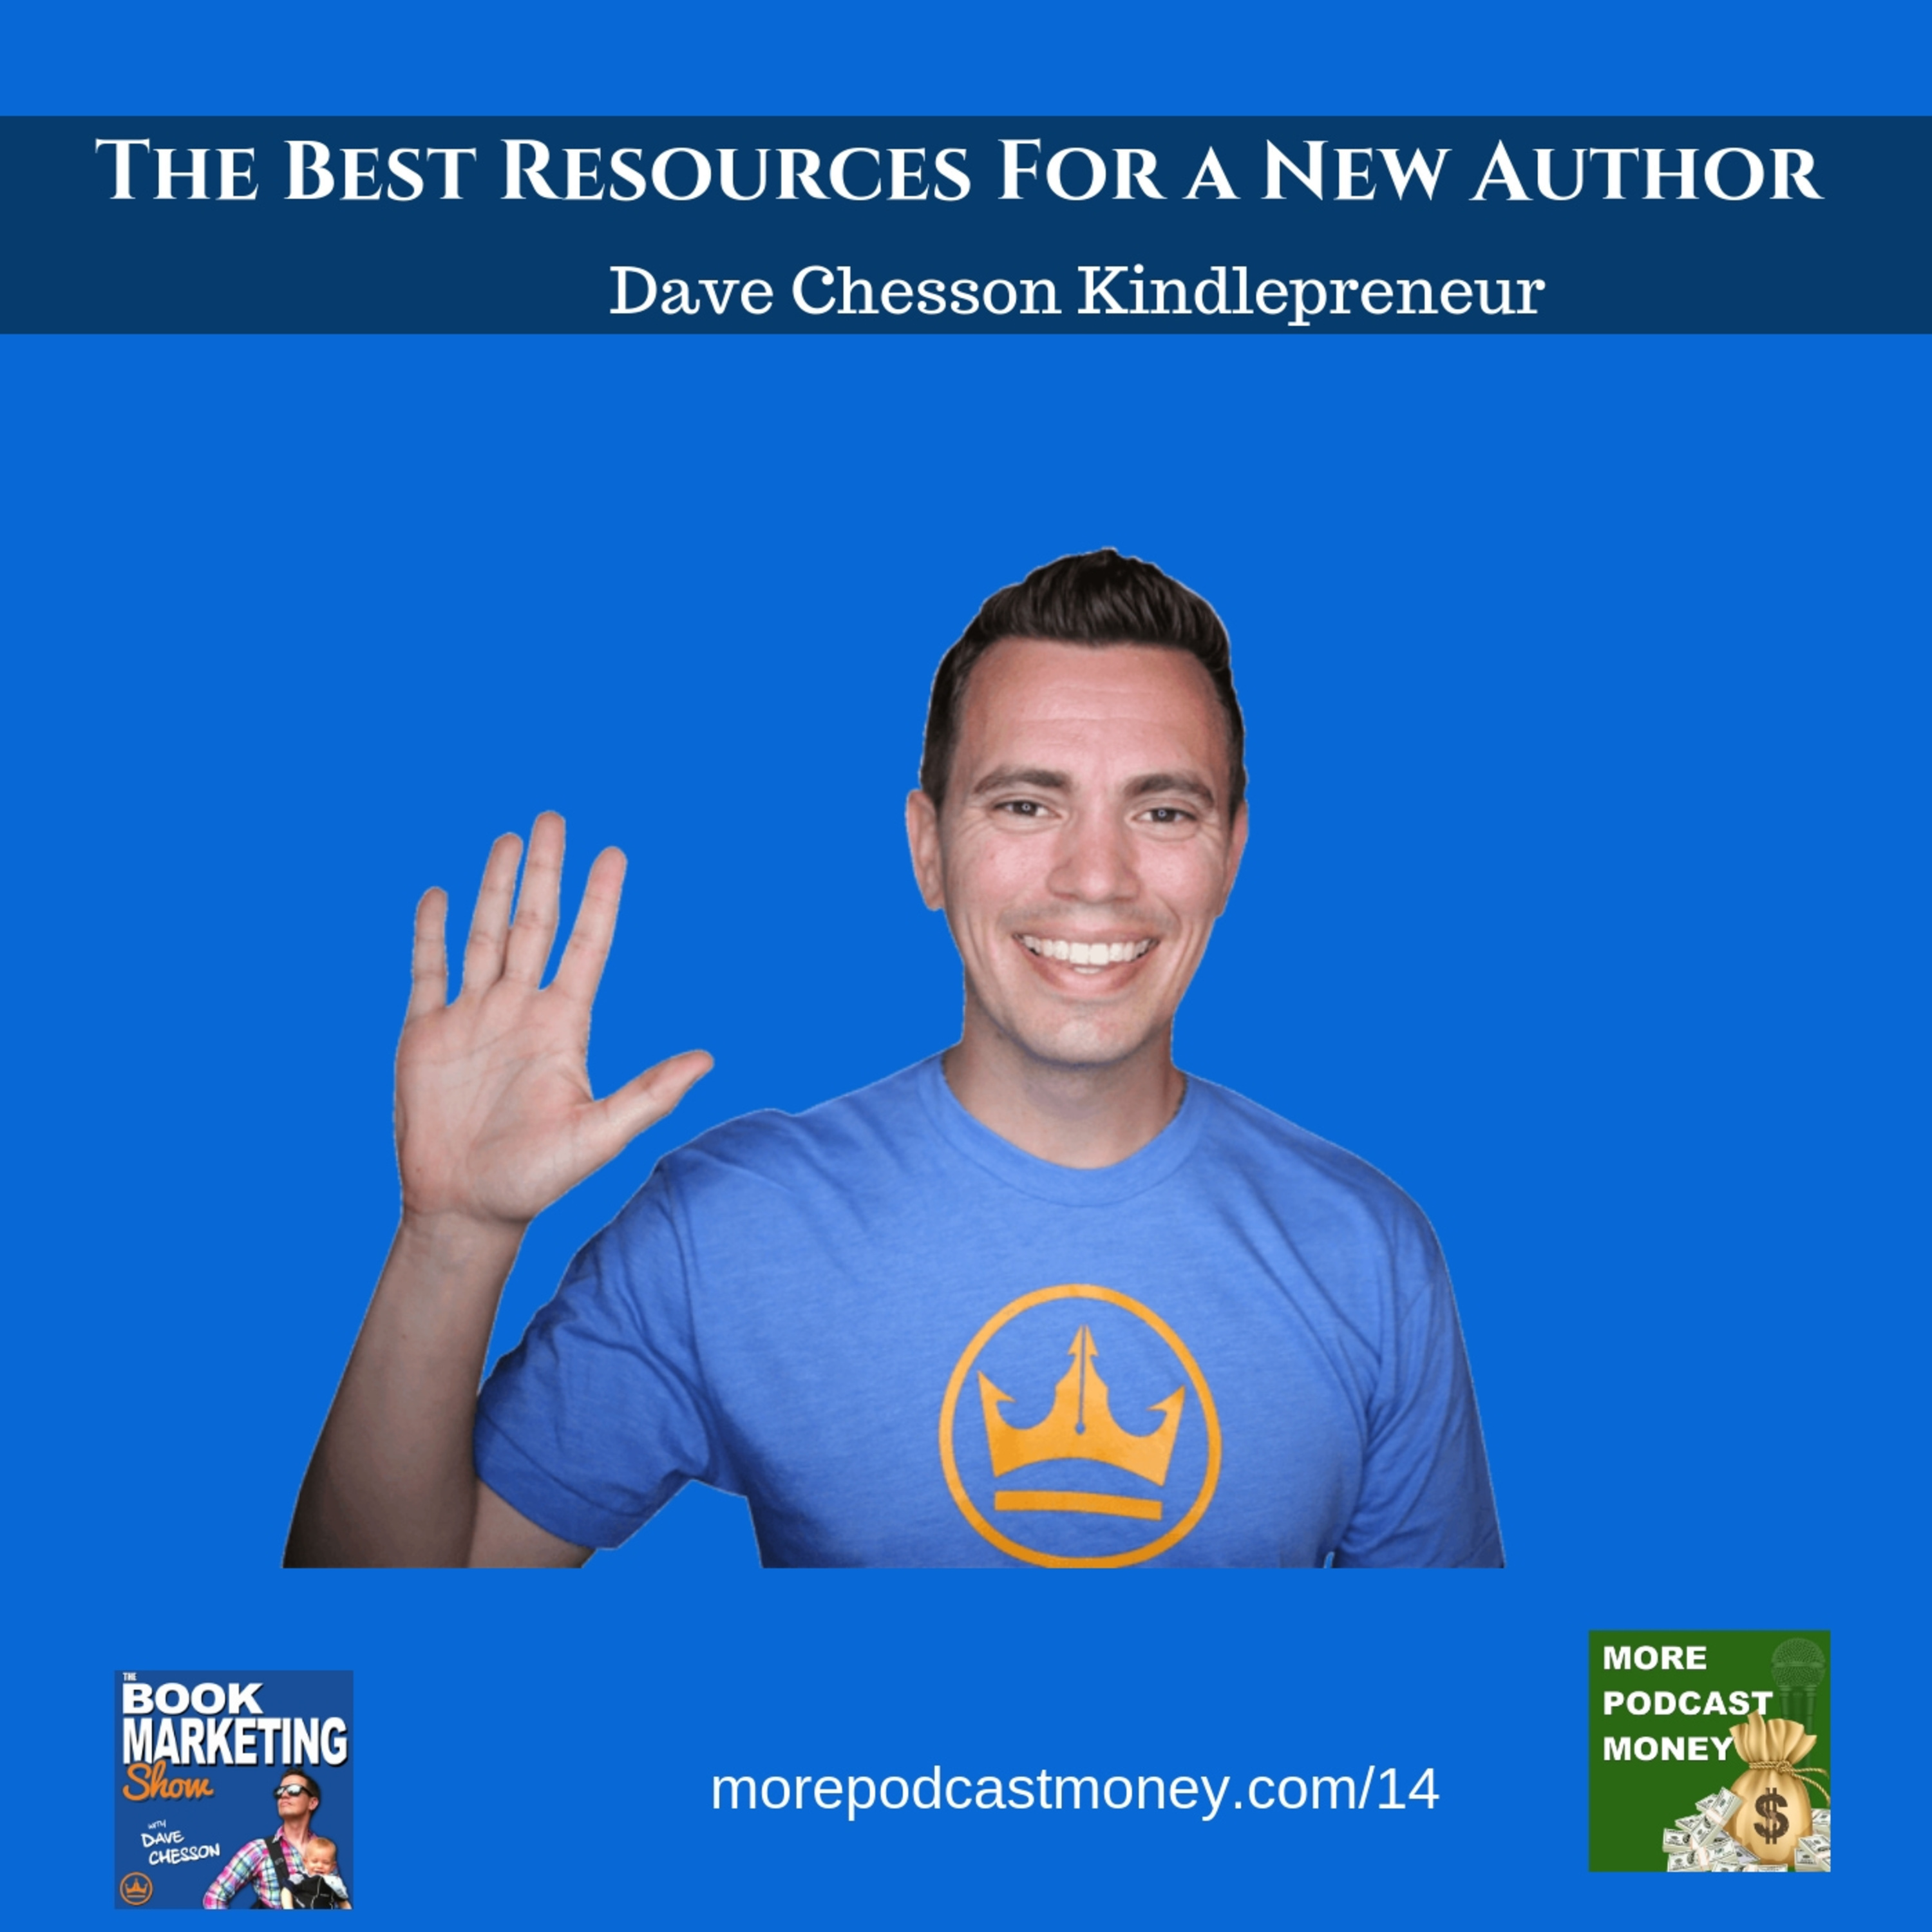 The Best Resources For a New Author